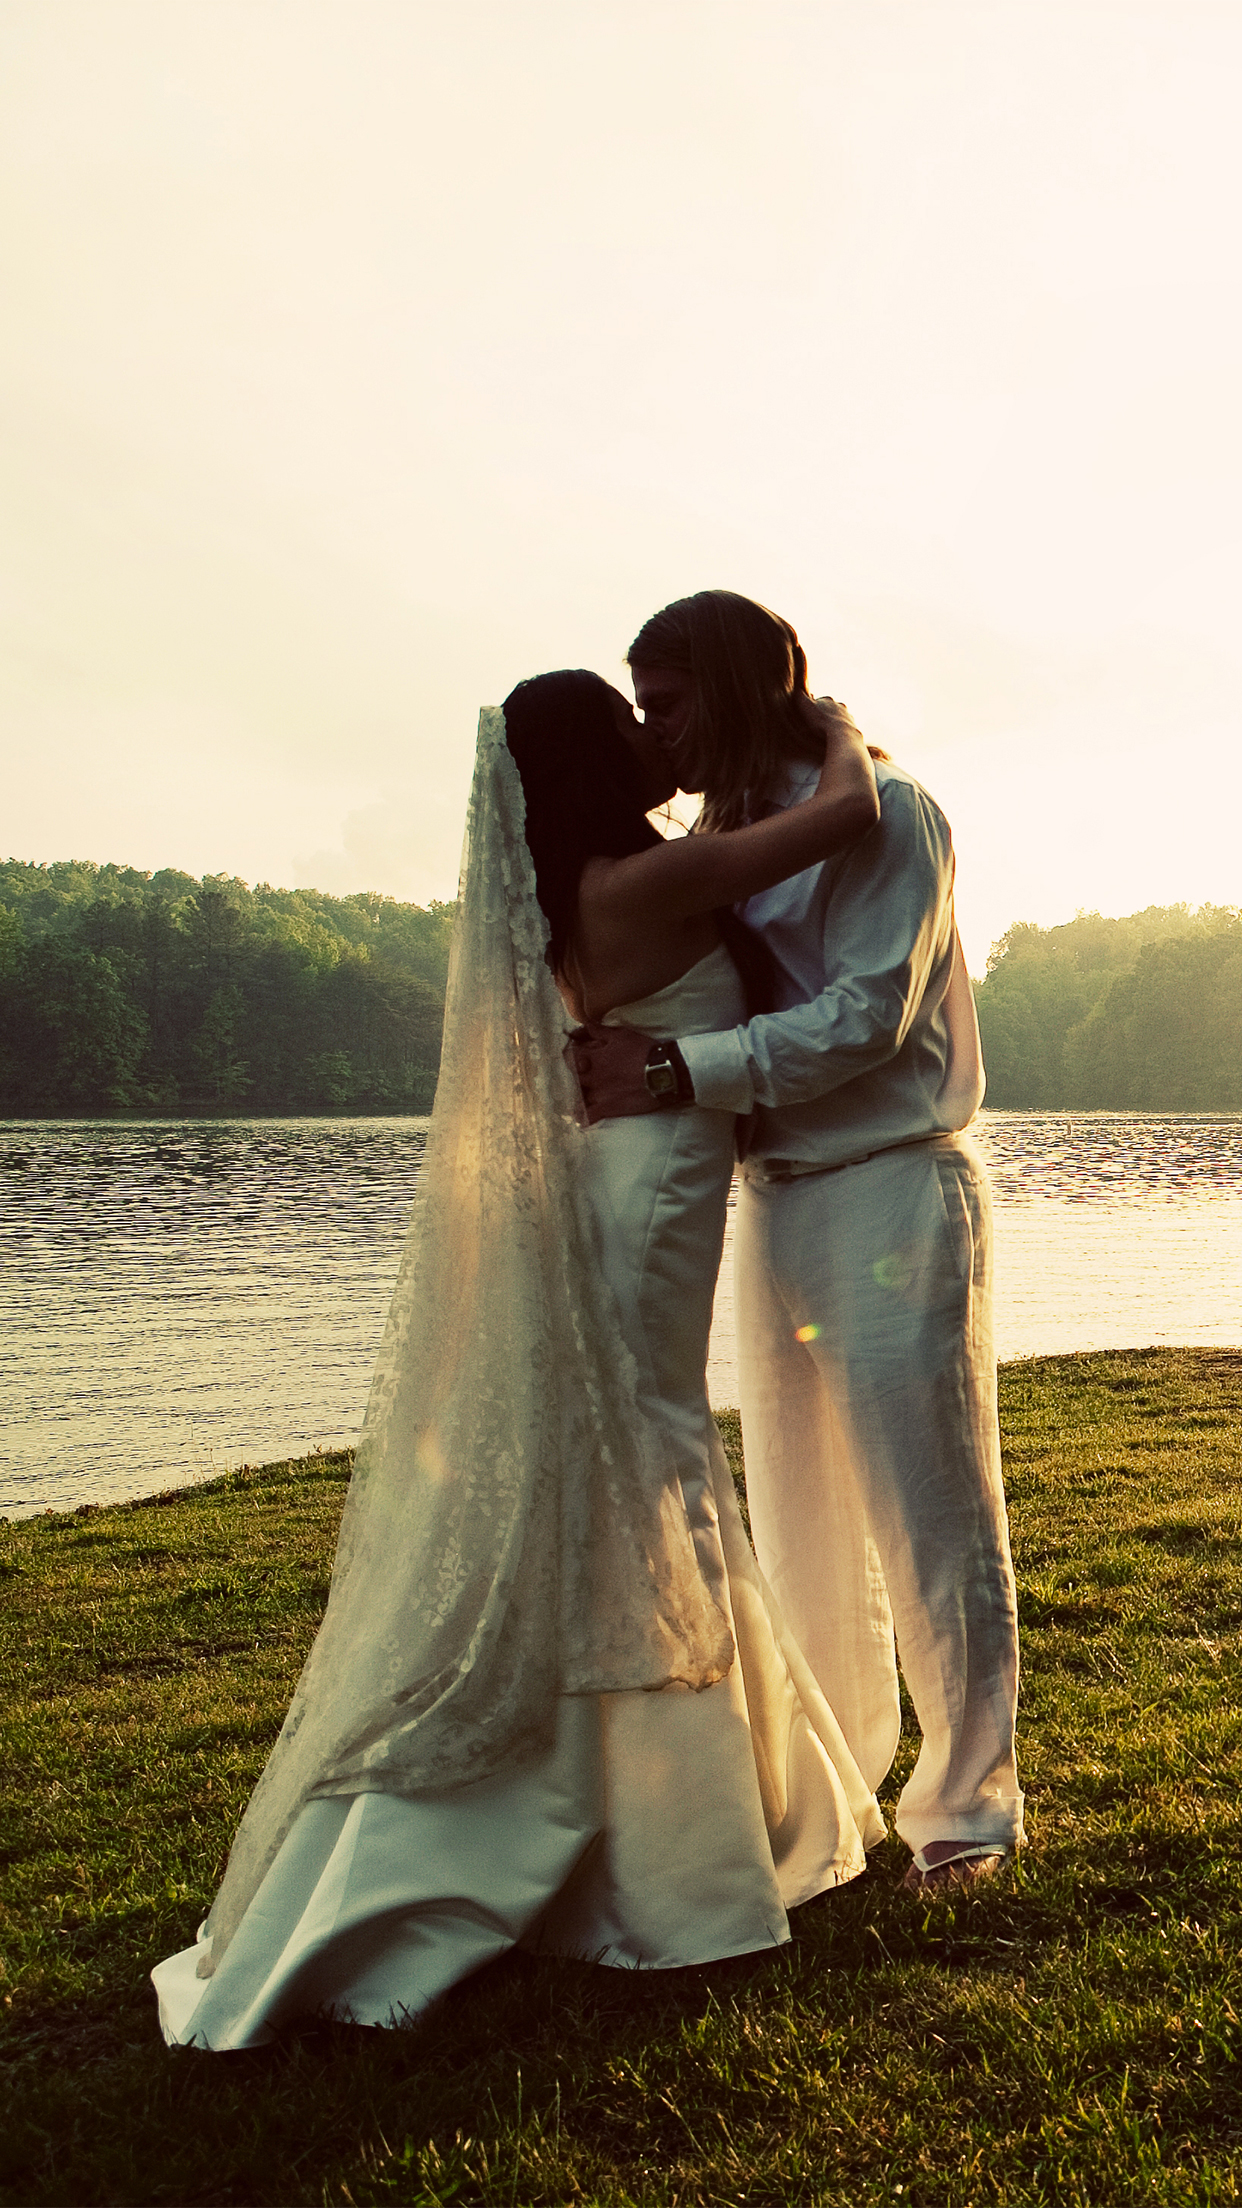 Wedding Lake iPhone 3Wallpapers Parallax Les 3 Wallpapers iPhone du jour (15/05/2015)